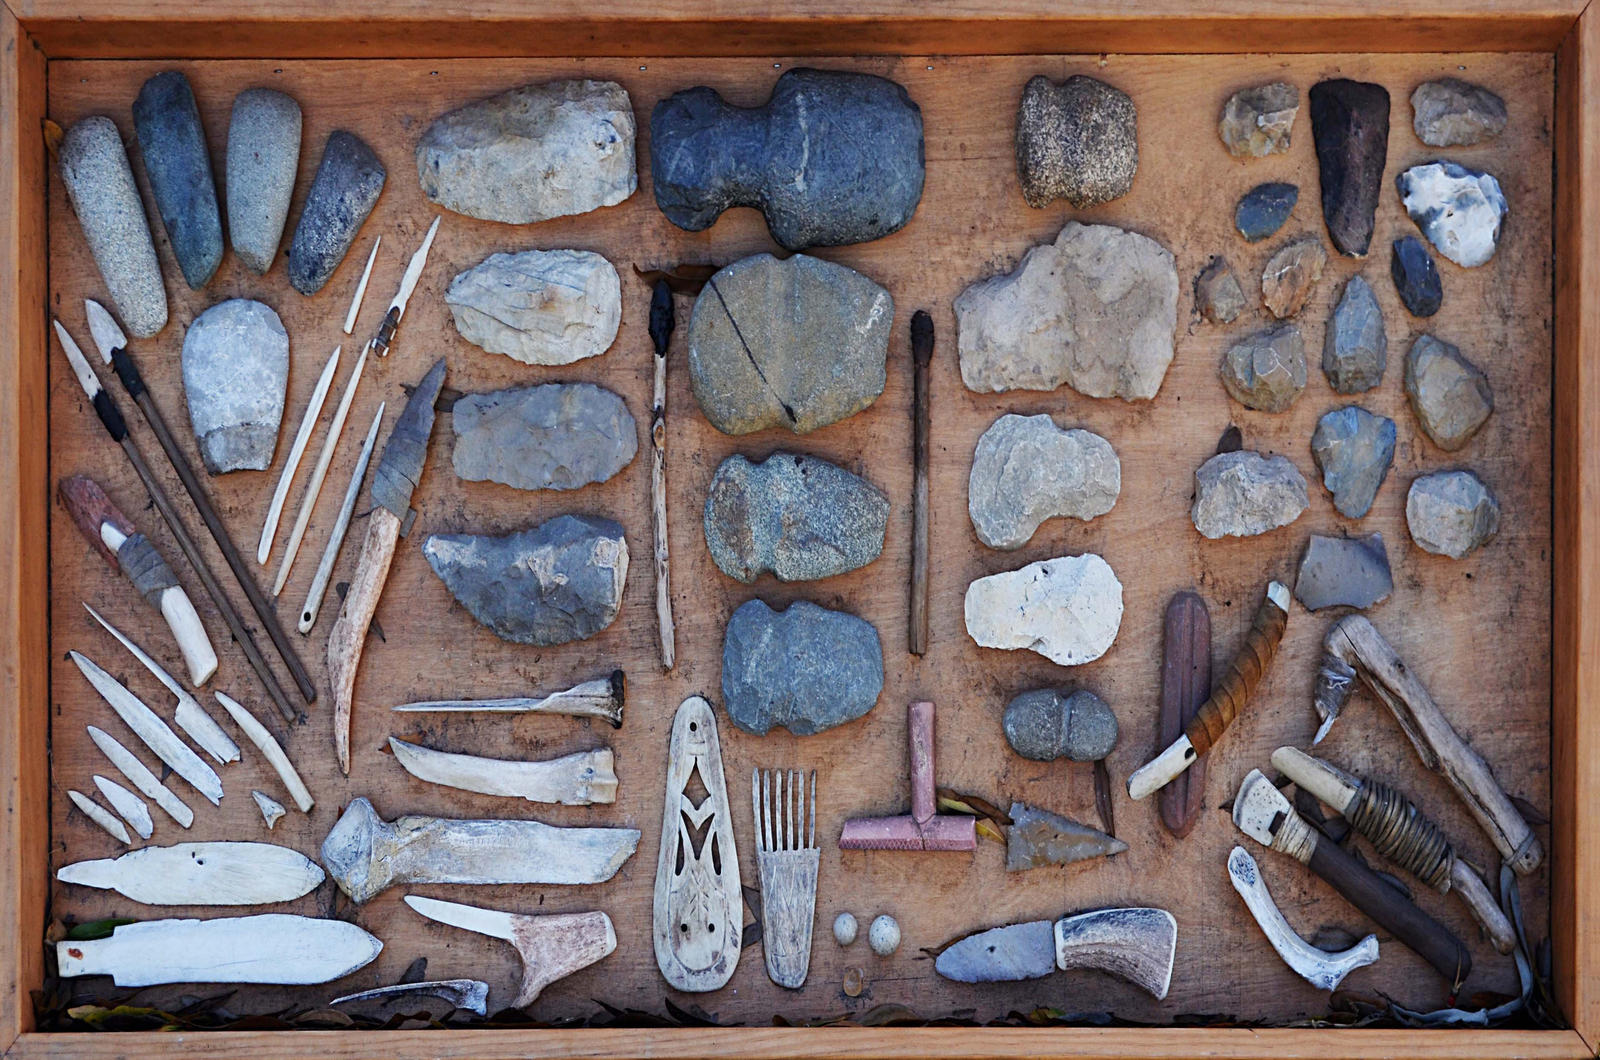 native american indian tools ectstock photo 0054 by